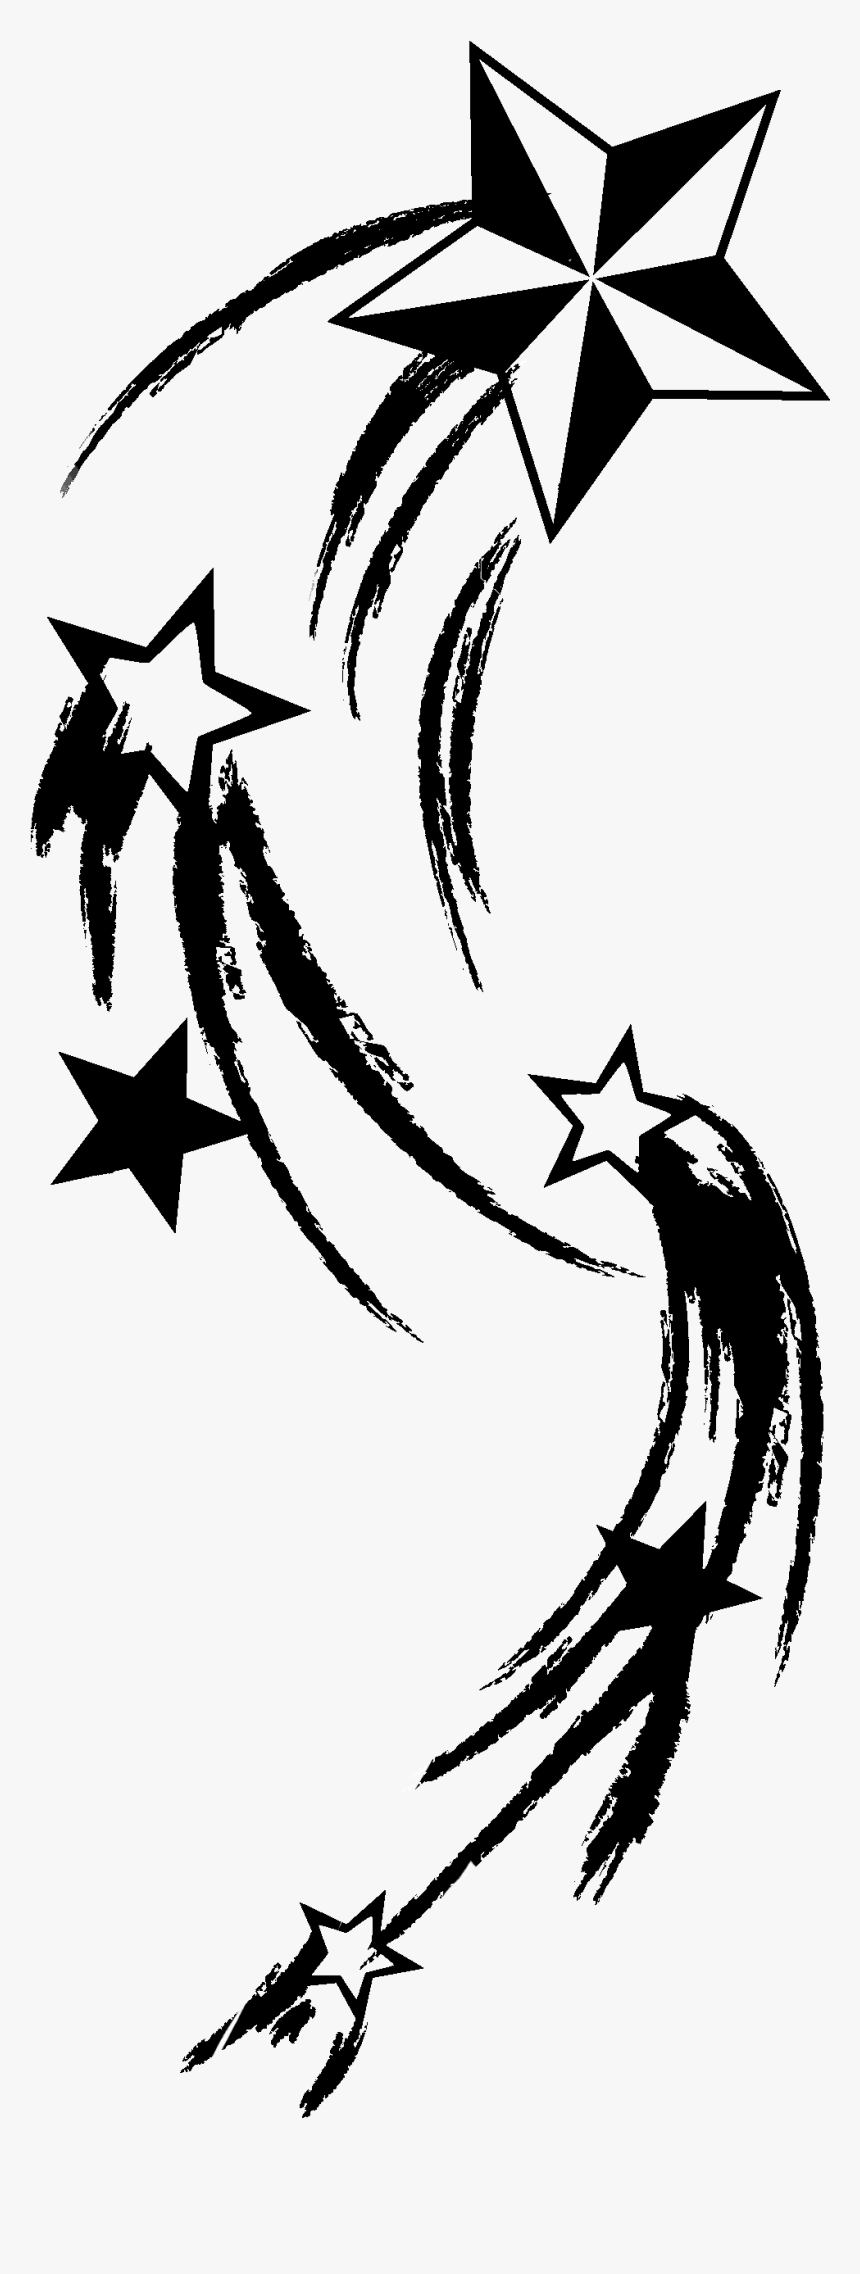 Transparent Star Tattoo Png - Shooting Star Tattoo Png, Png Download, Free Download